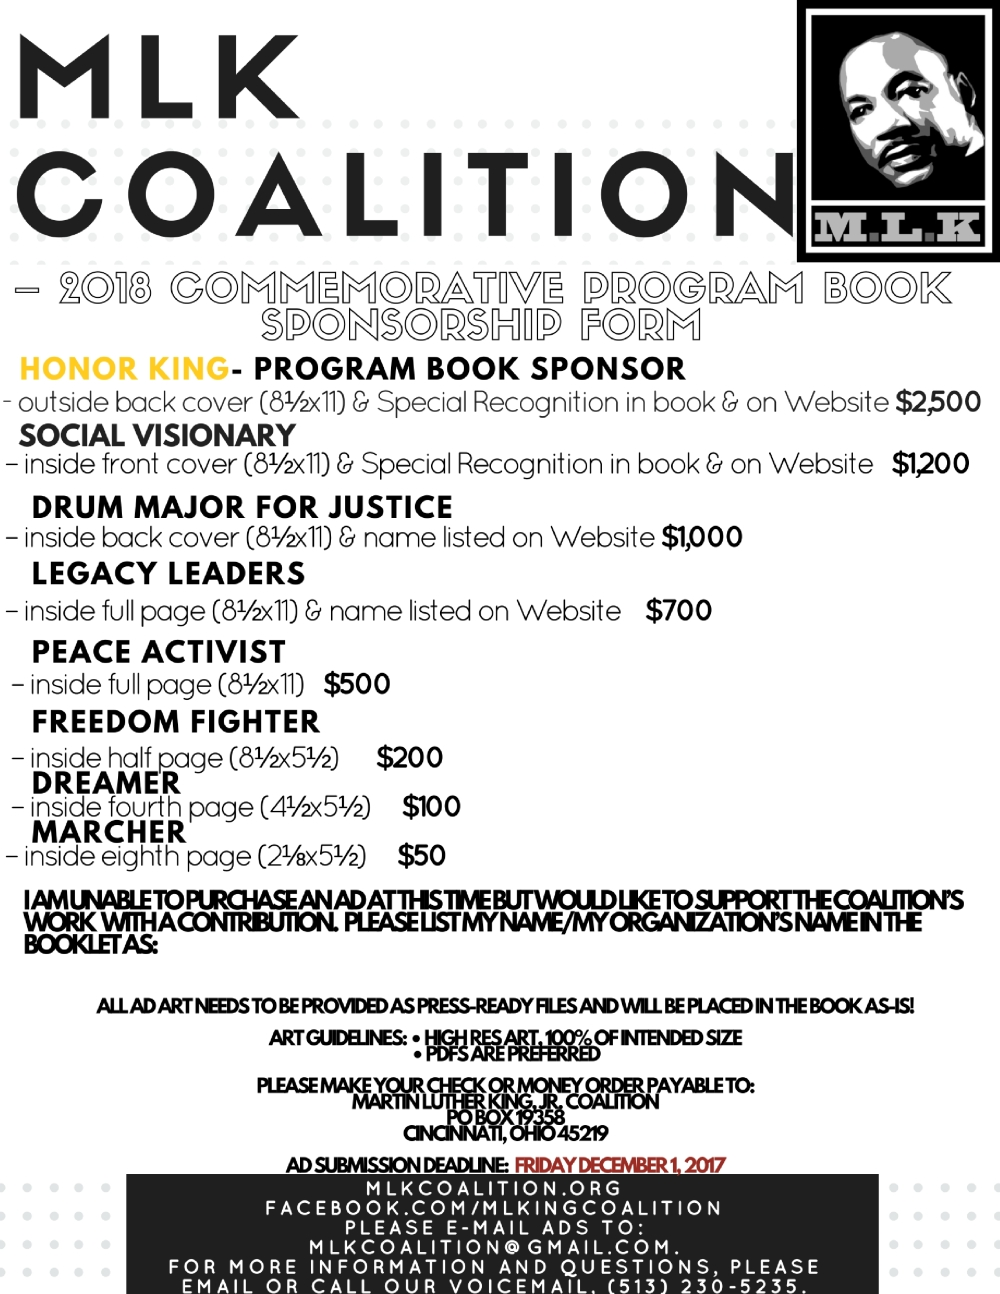 The Martin Luther King, Jr. Coalition – 2018 Commemorative Program Book Sponsorship FormOrganizationCompany Name- _______________________________________________________Address- (4)